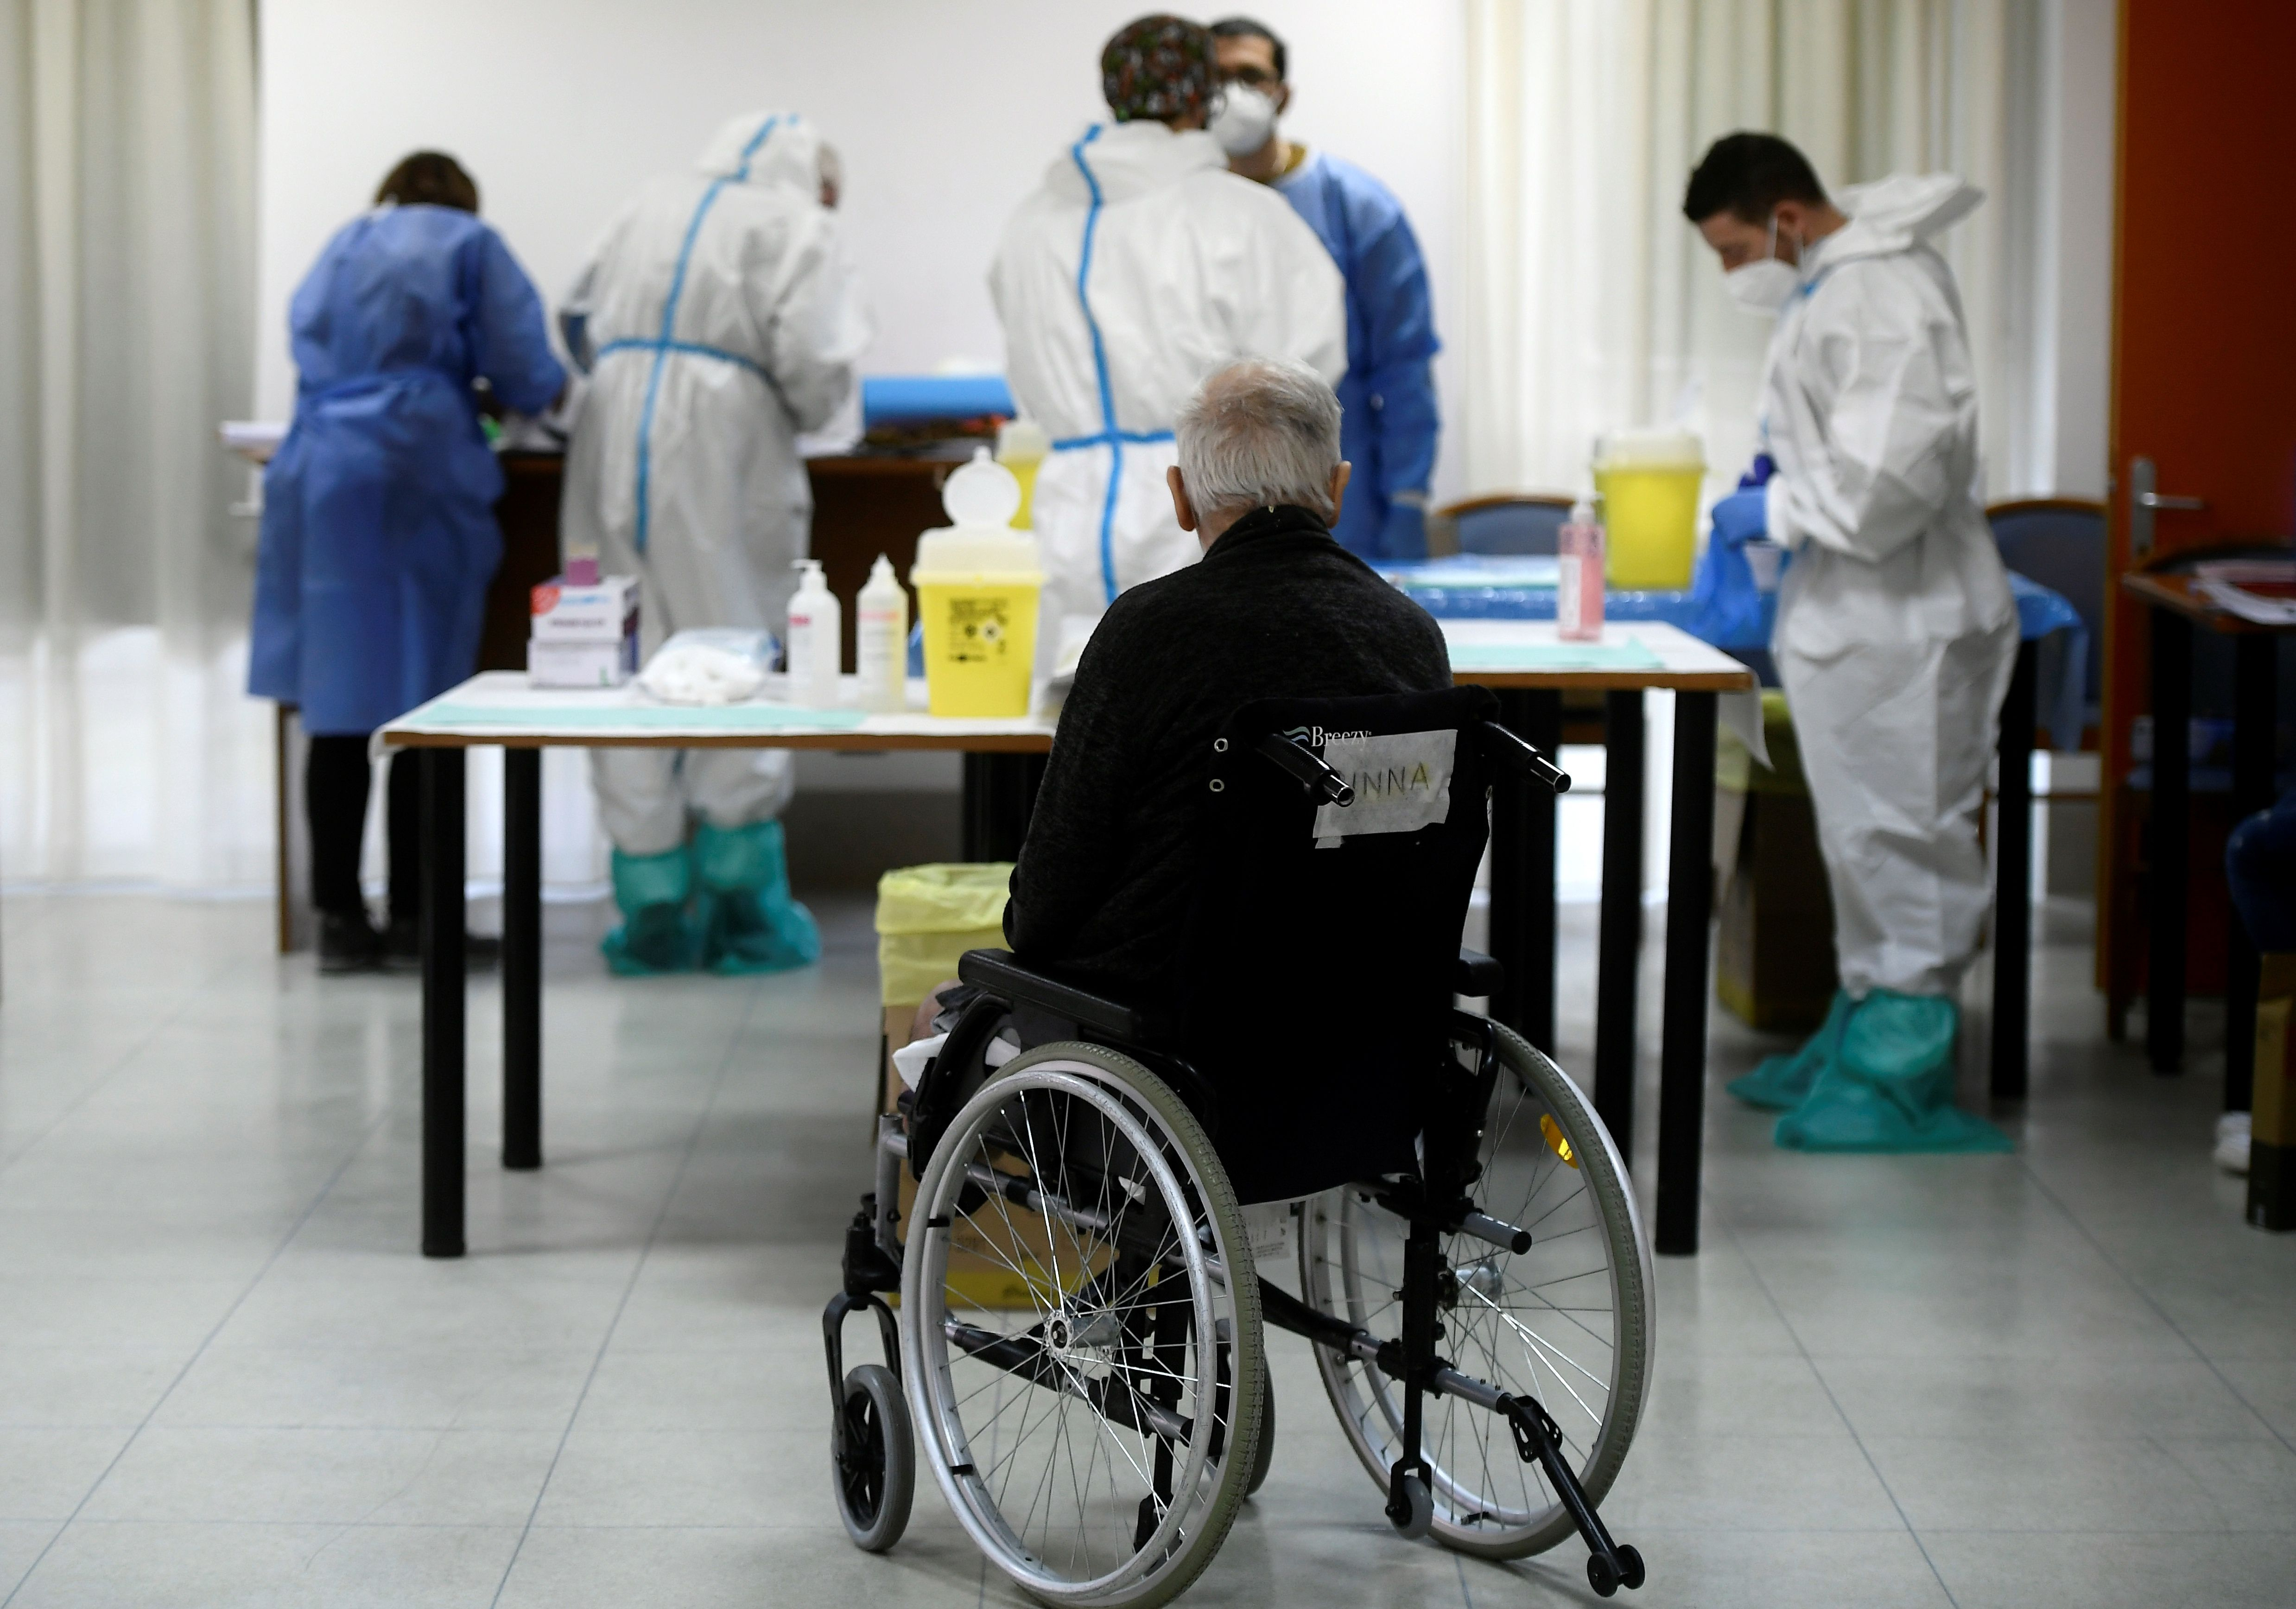 A resident of a care home in Rome waits to receive a dose of the Pfizer-BioNTech COVID-19 vaccine on January 8.